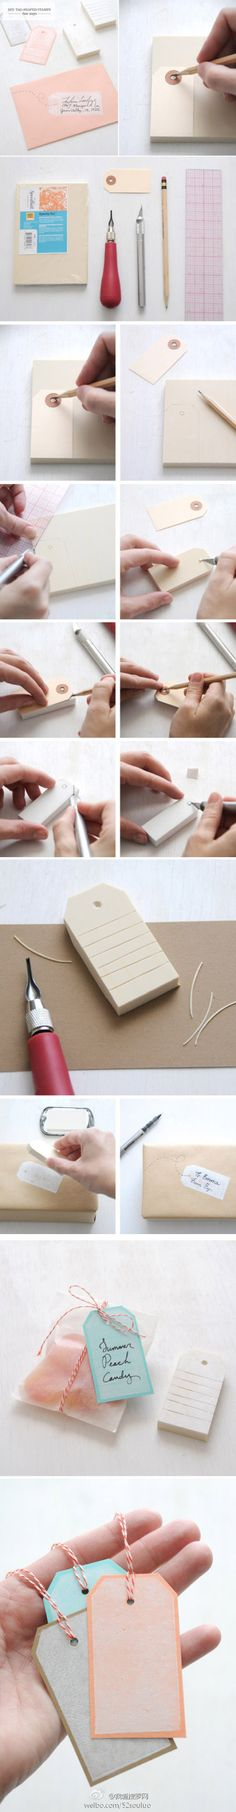 DIY stamp. Awesome!